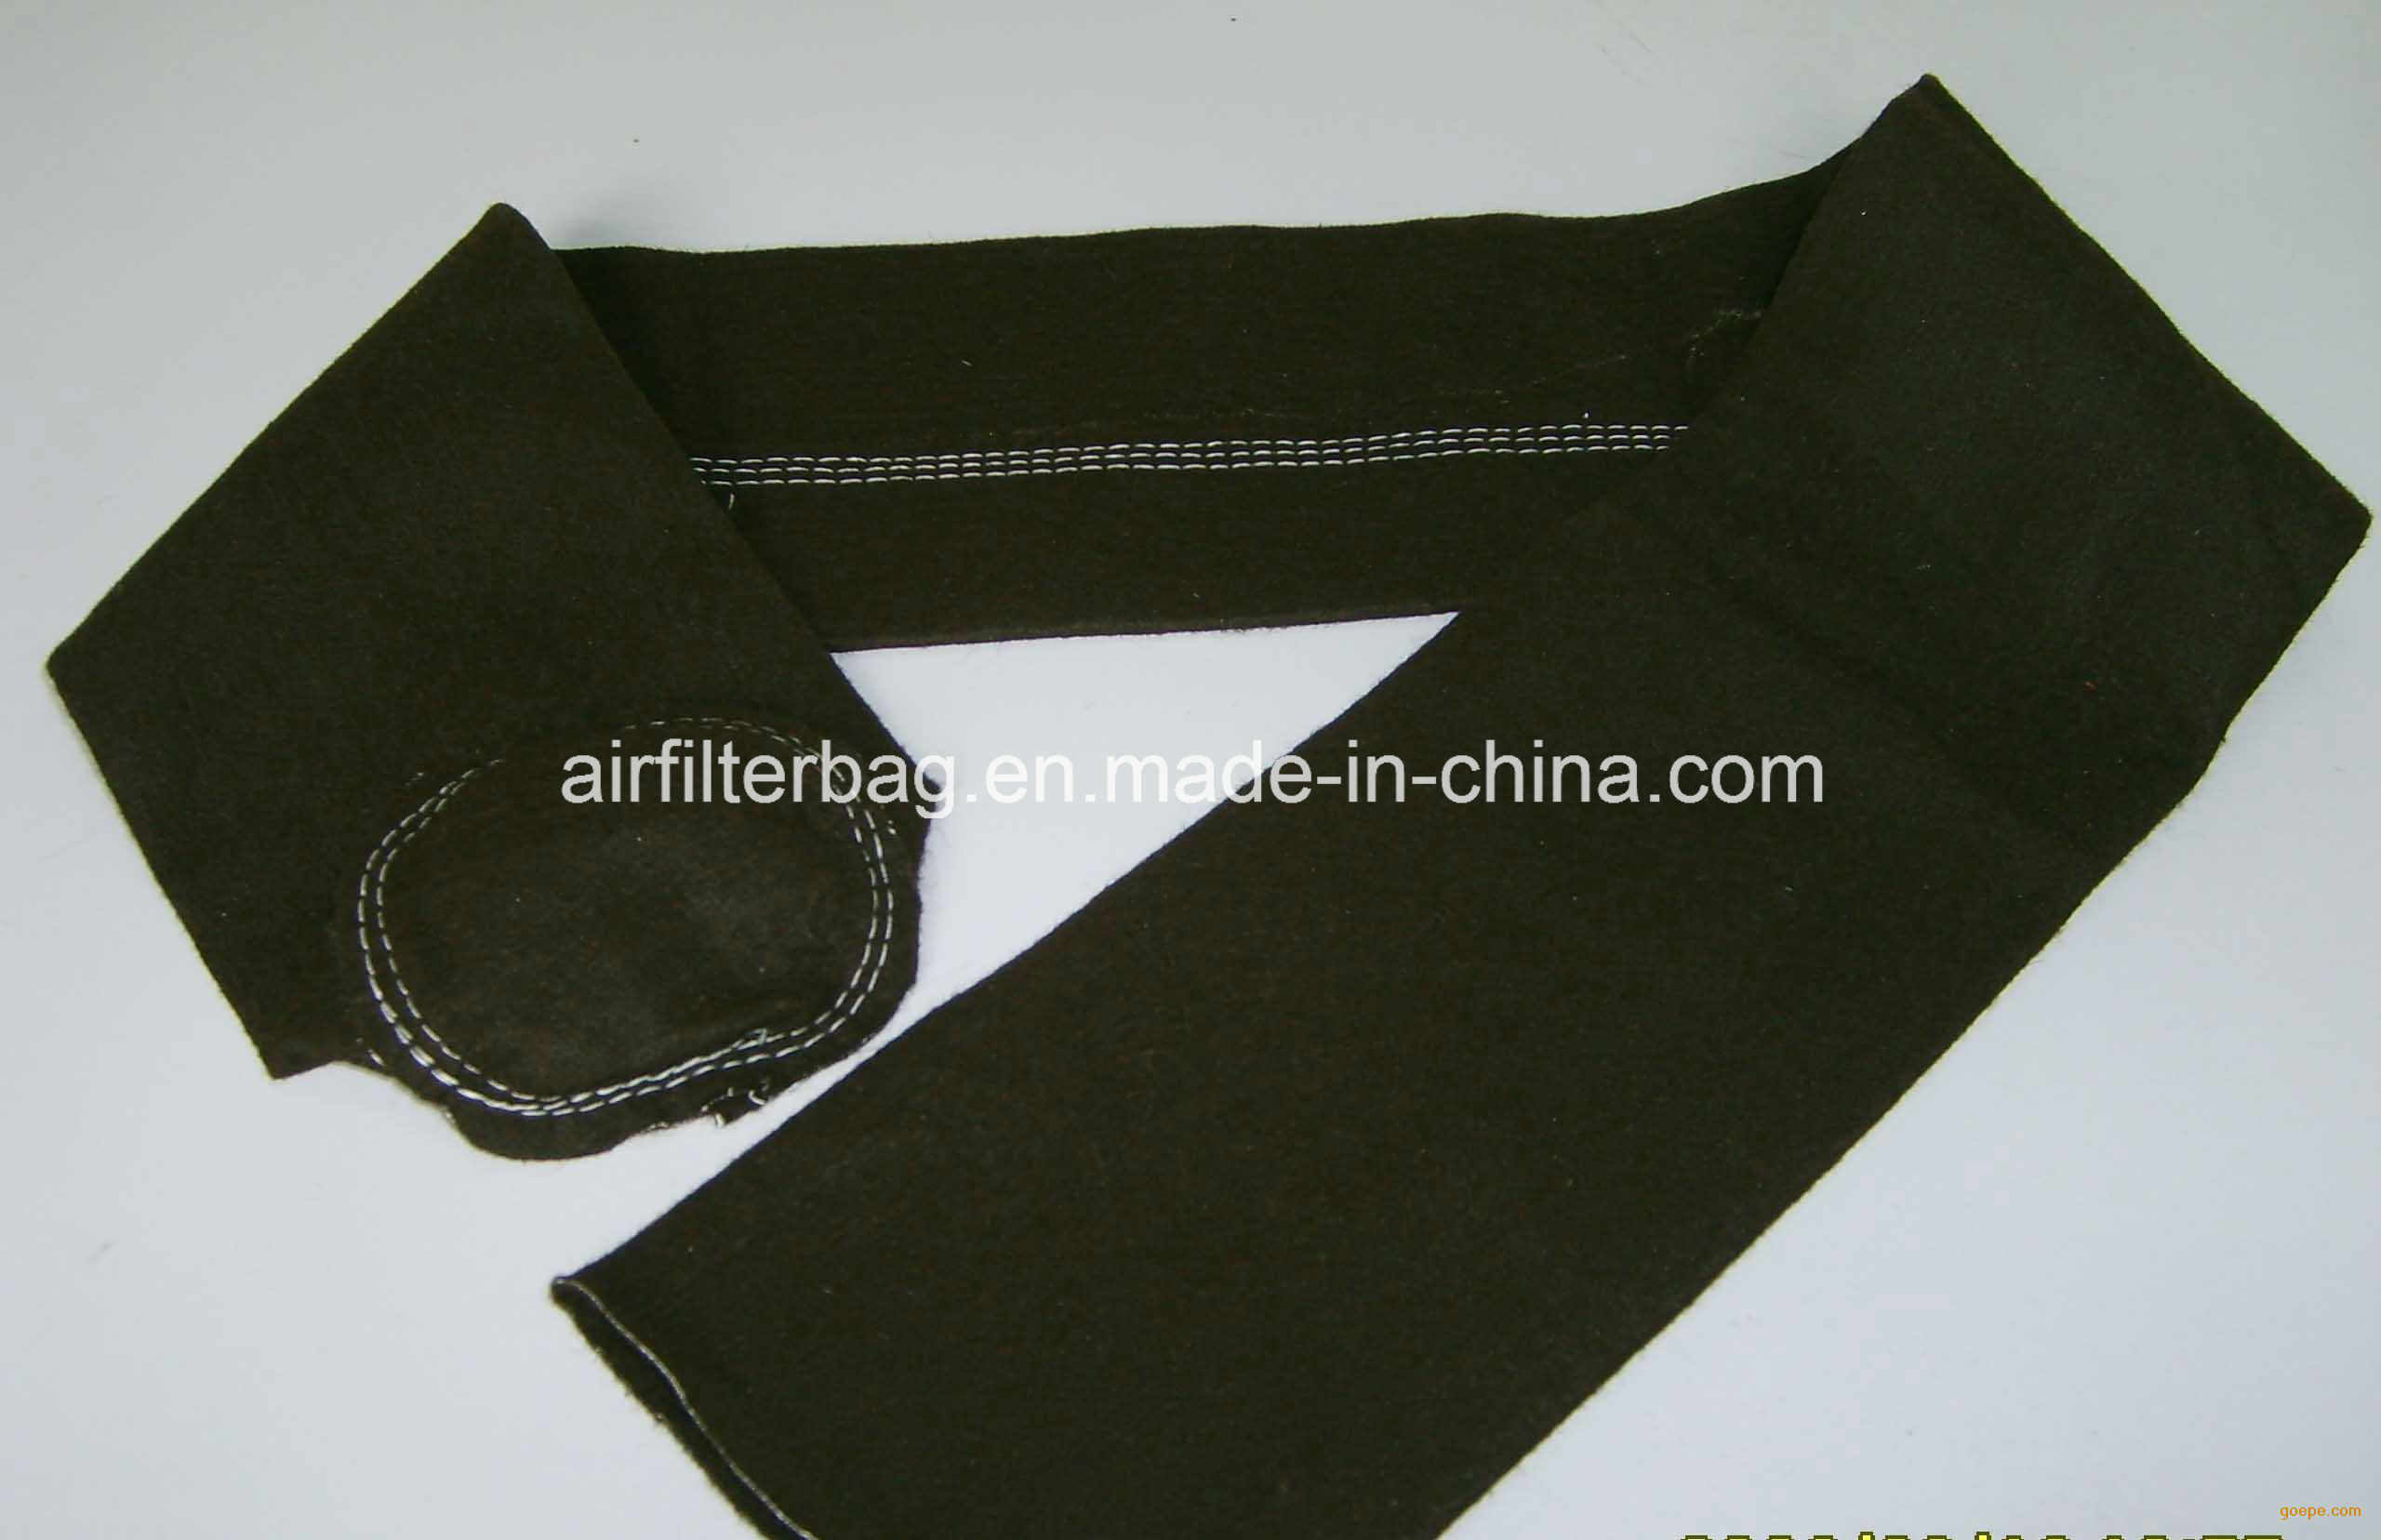 PTFE Filter Bag (Black) for Dust Collector (Air Filter) pictures & photos